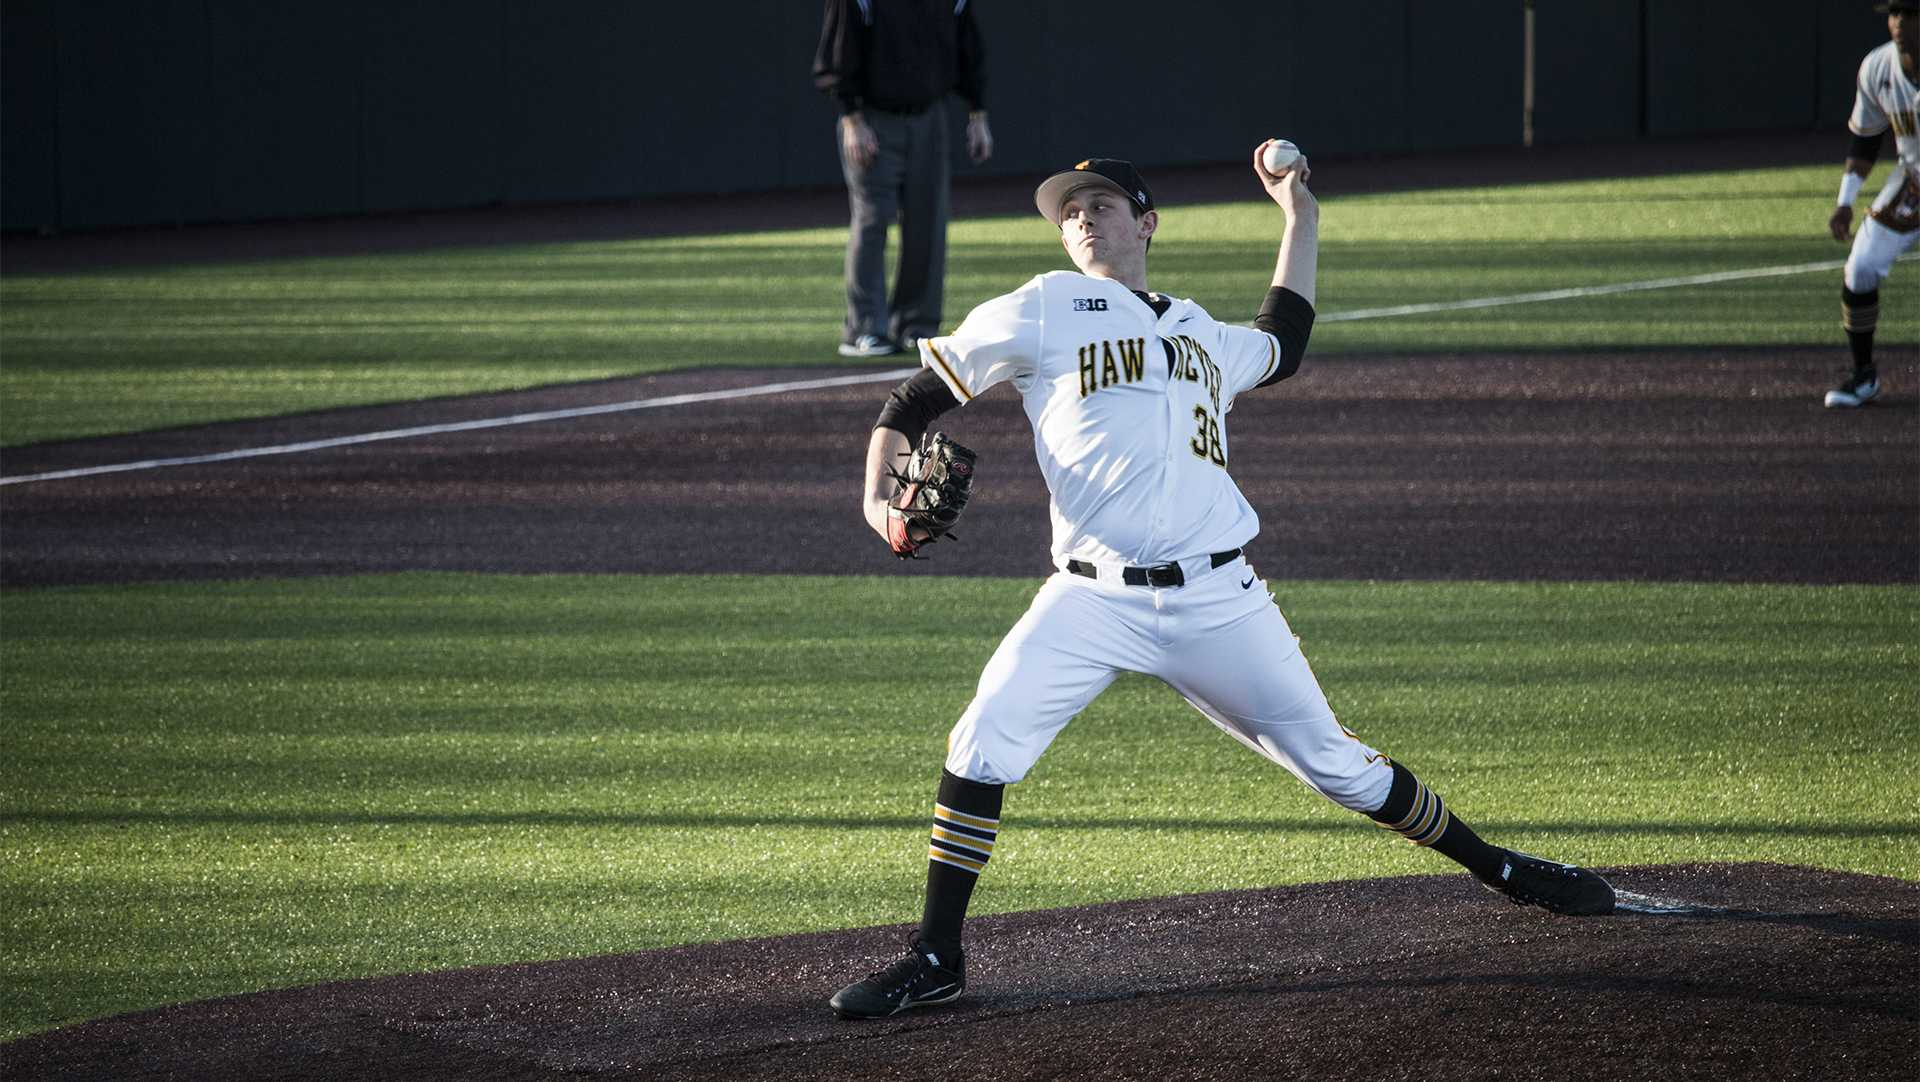 Iowa pitcher Trenton Wallace throws the ball during men's baseball Iowa vs. Cornell at Duane Banks Field on Feb. 27, 2018. The Hawkeyes defeated Cornell 15-1. (Katina Zentz/The Daily Iowan)